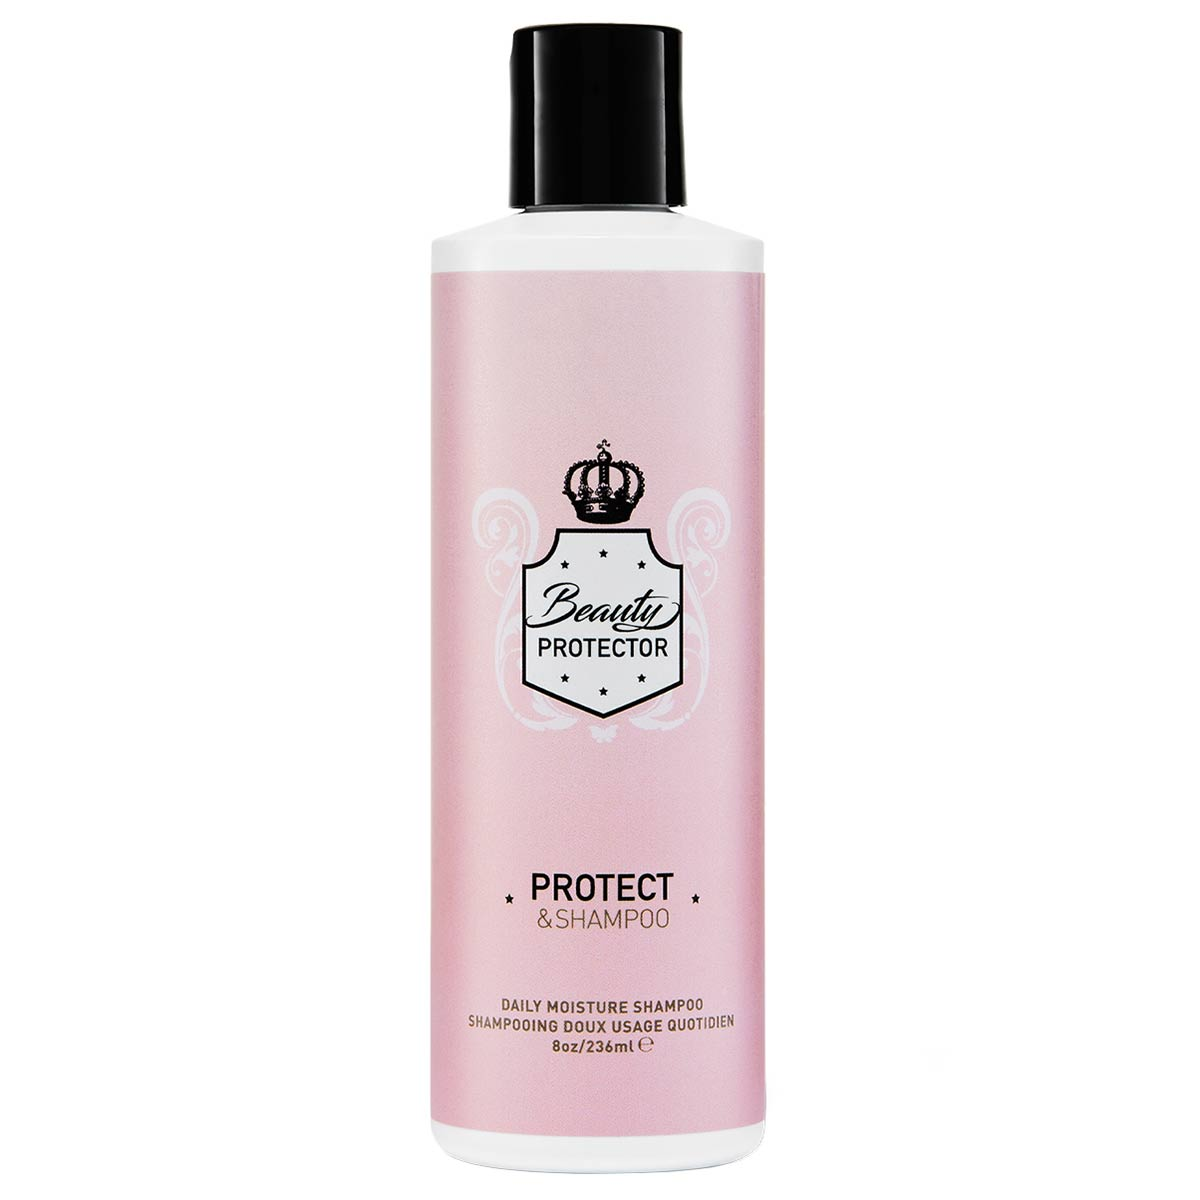 Beauty Protector Protect & Shampoo